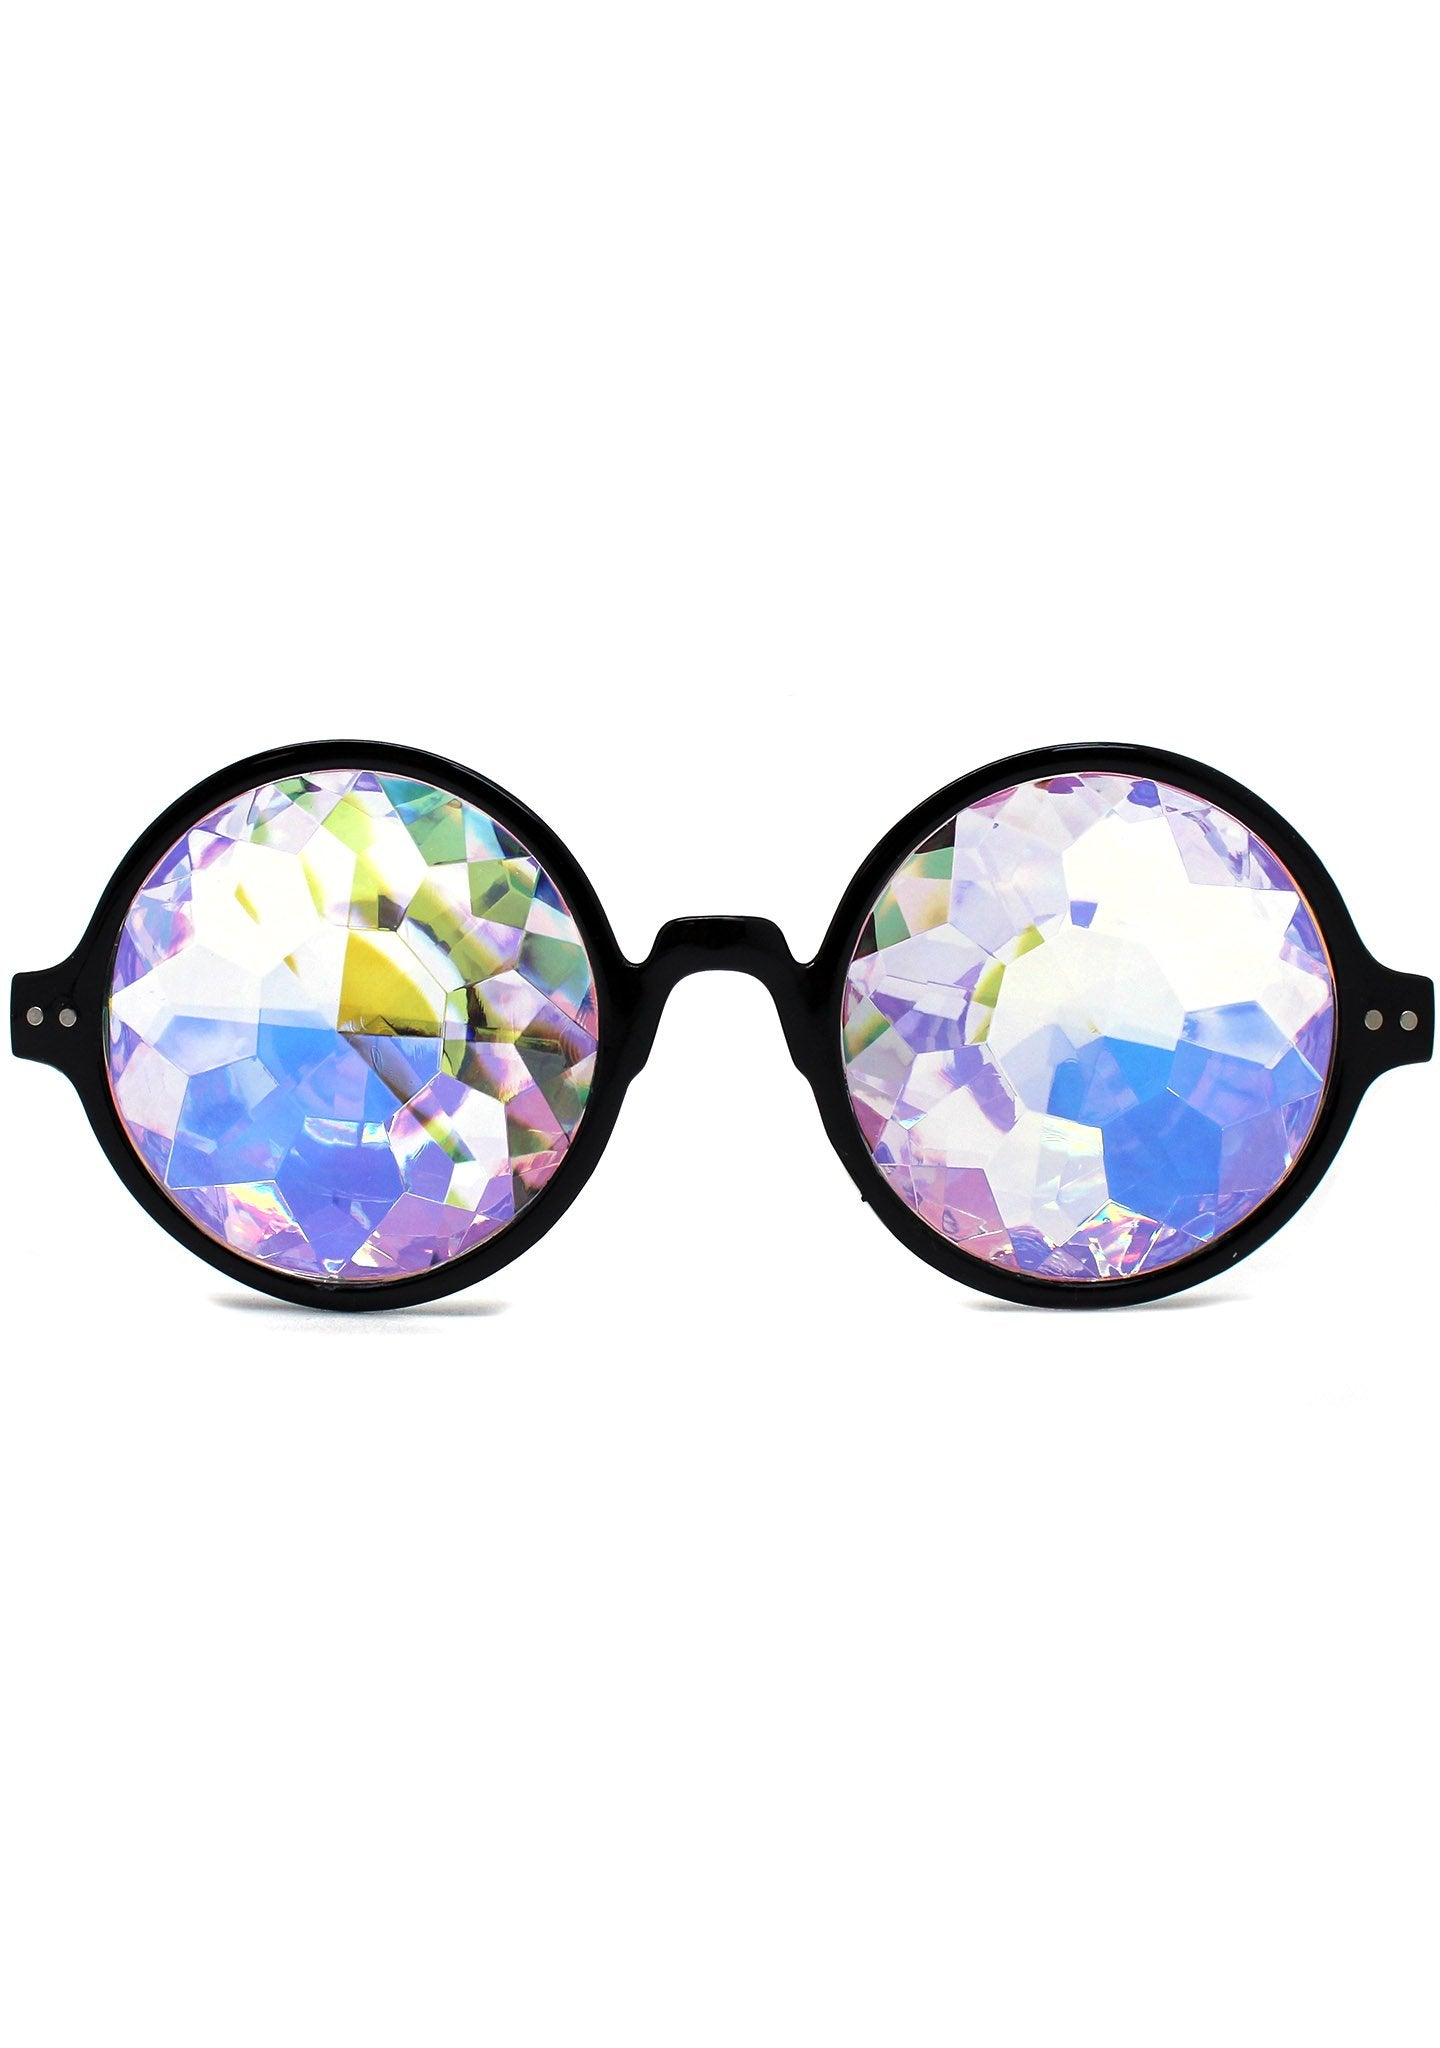 Dreamland Kaleidoscope Sunglasses in Black